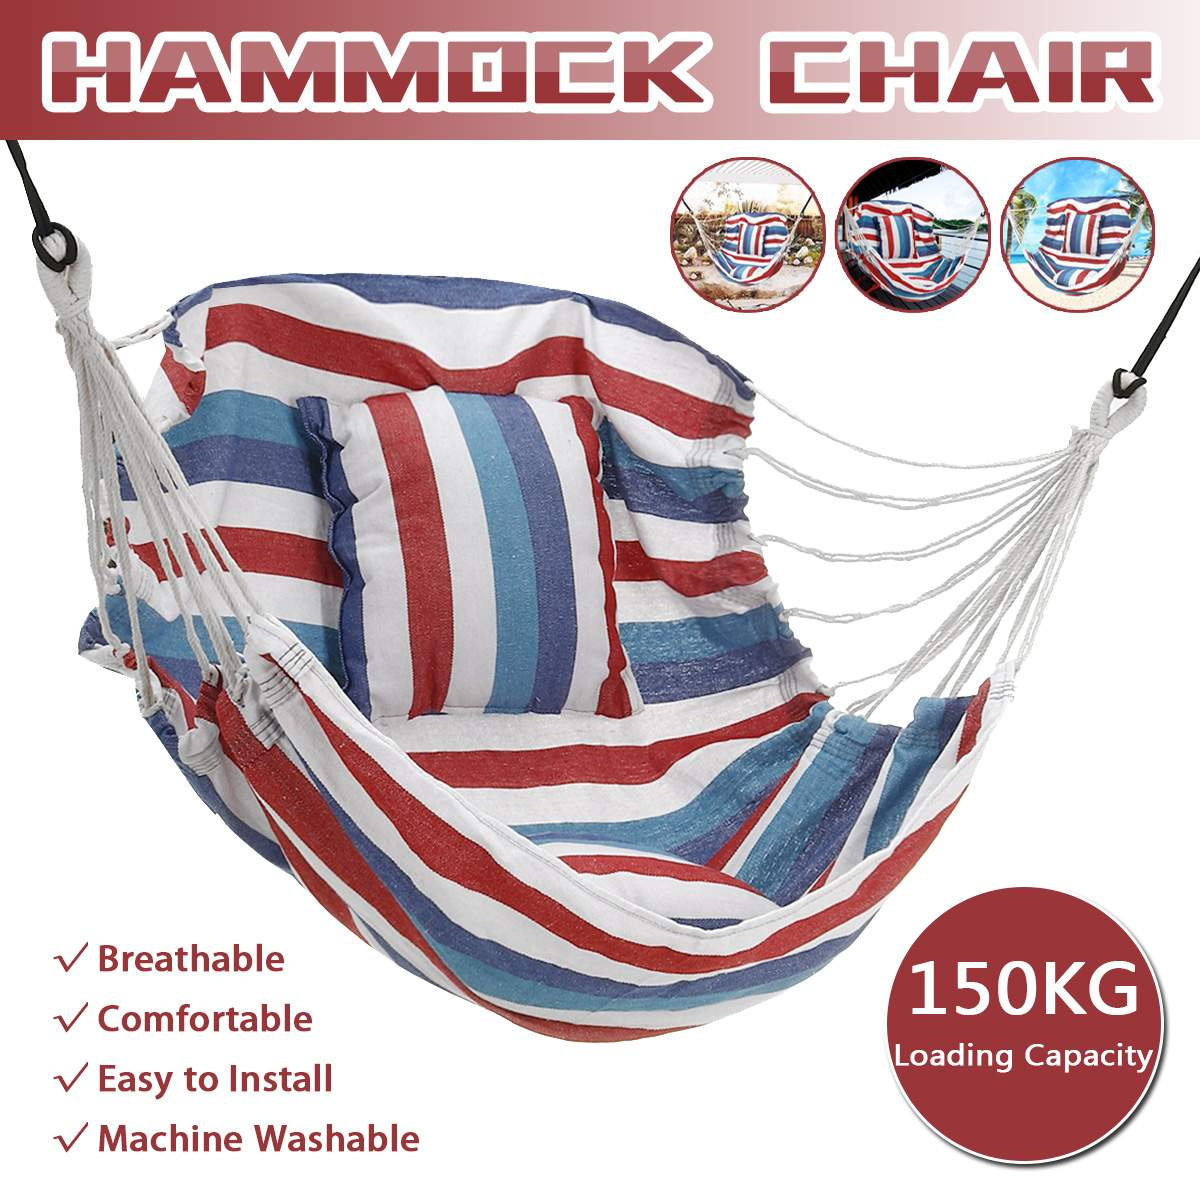 150kg Portable Garden Hang Chair Swinging Indoor Outdoor Furniture Hammock Leisure Hanging Rope Chair Swing Chair Camping Seat